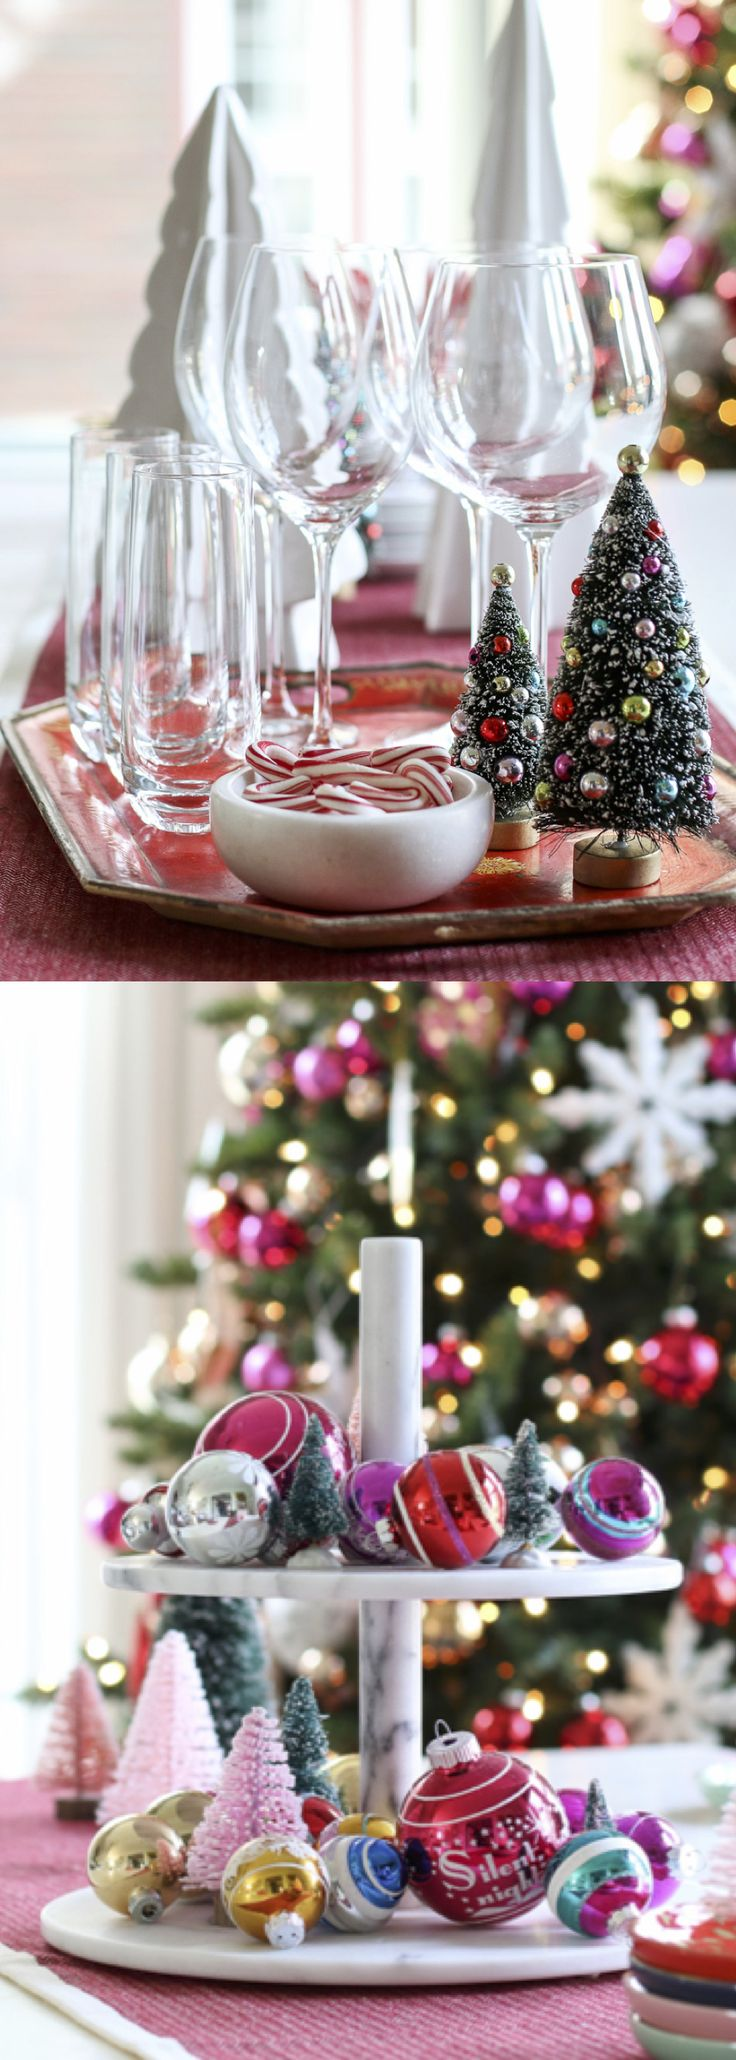 Create Function Style With These Festive Holiday Centerpiece Ideas From  Inspiredbycharm